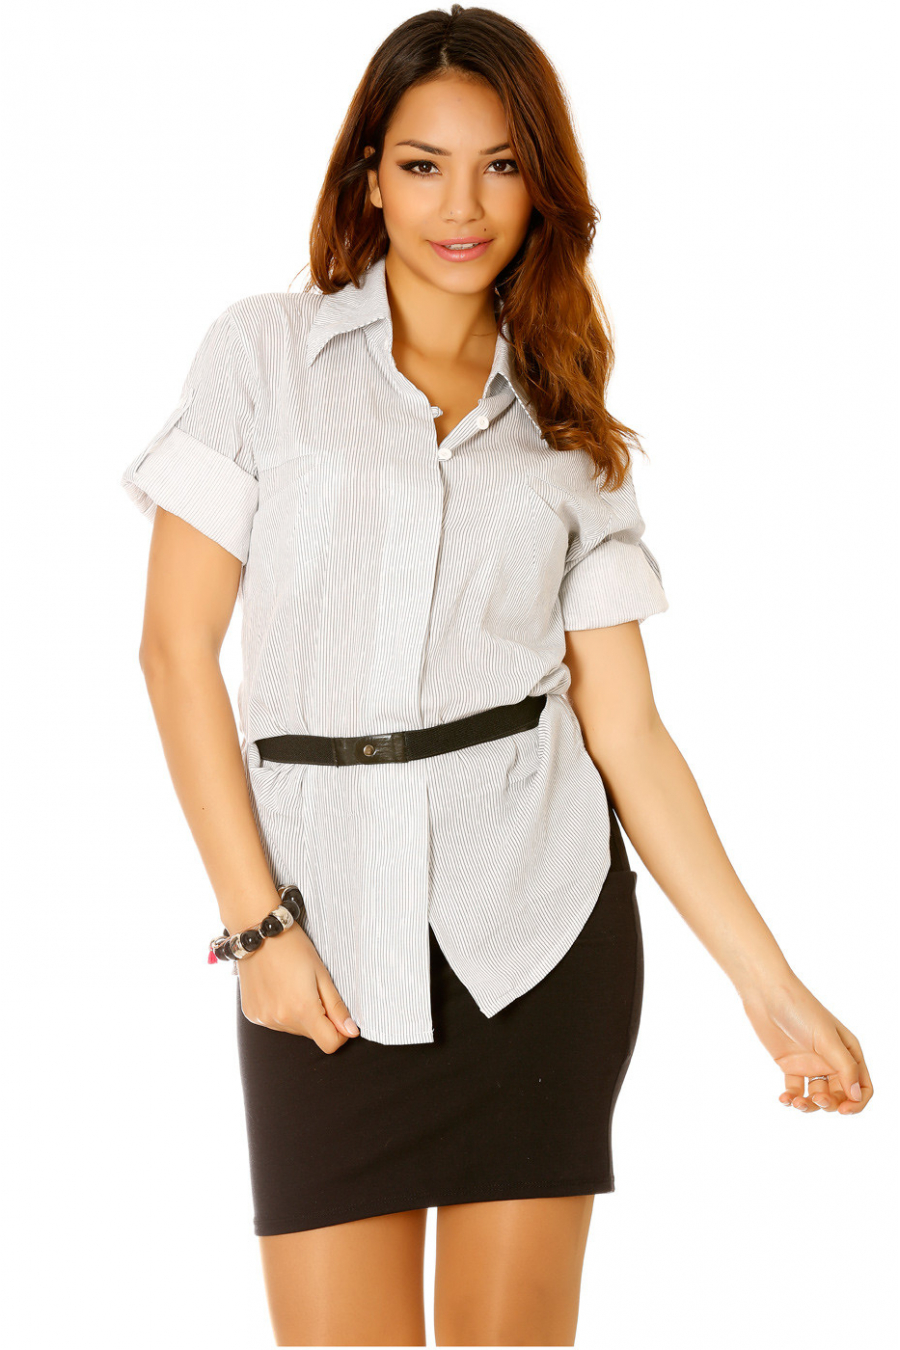 White and gray pinstripe blouse 3/4 sleeve with belt - 13145